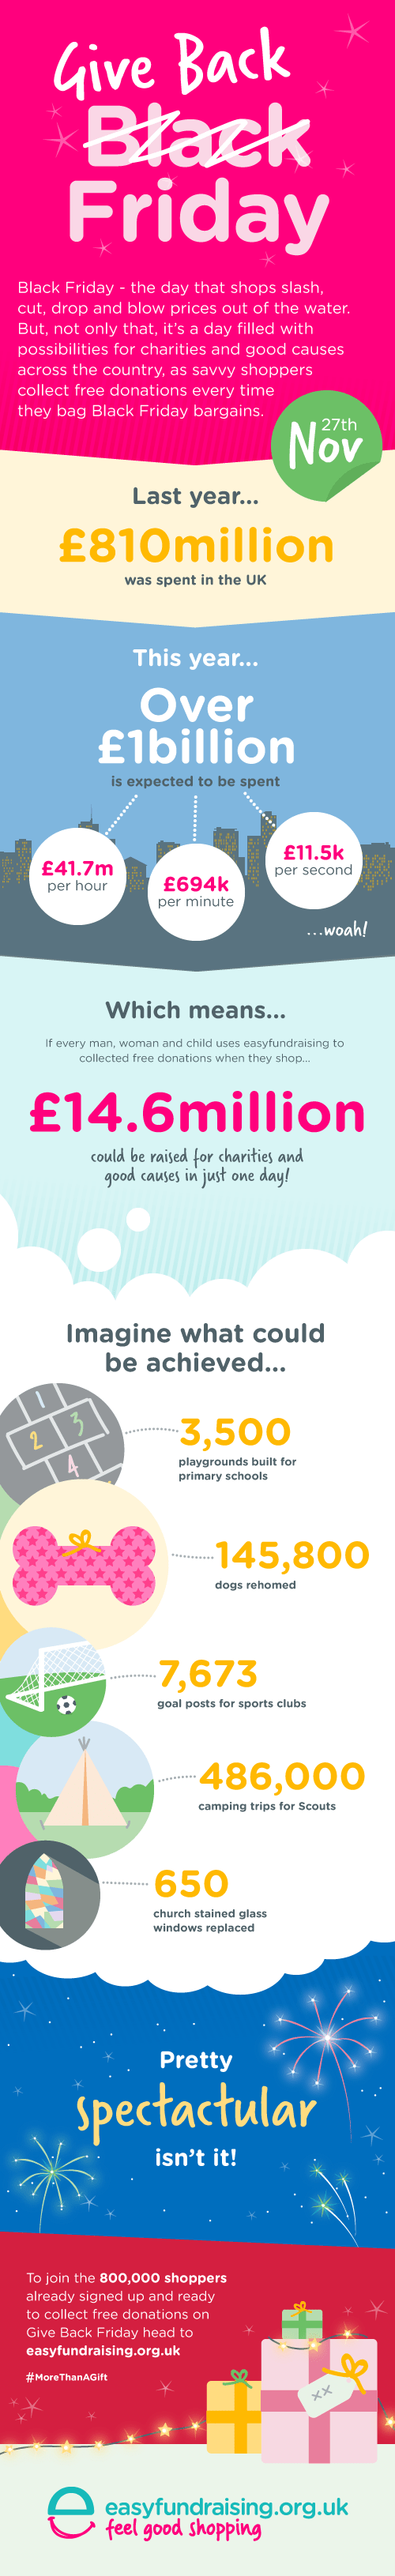 Black Friday fundraising – what could you raise? - An Infographic from easyfundraising.org.uk Blog - easyfundraising.org.uk<